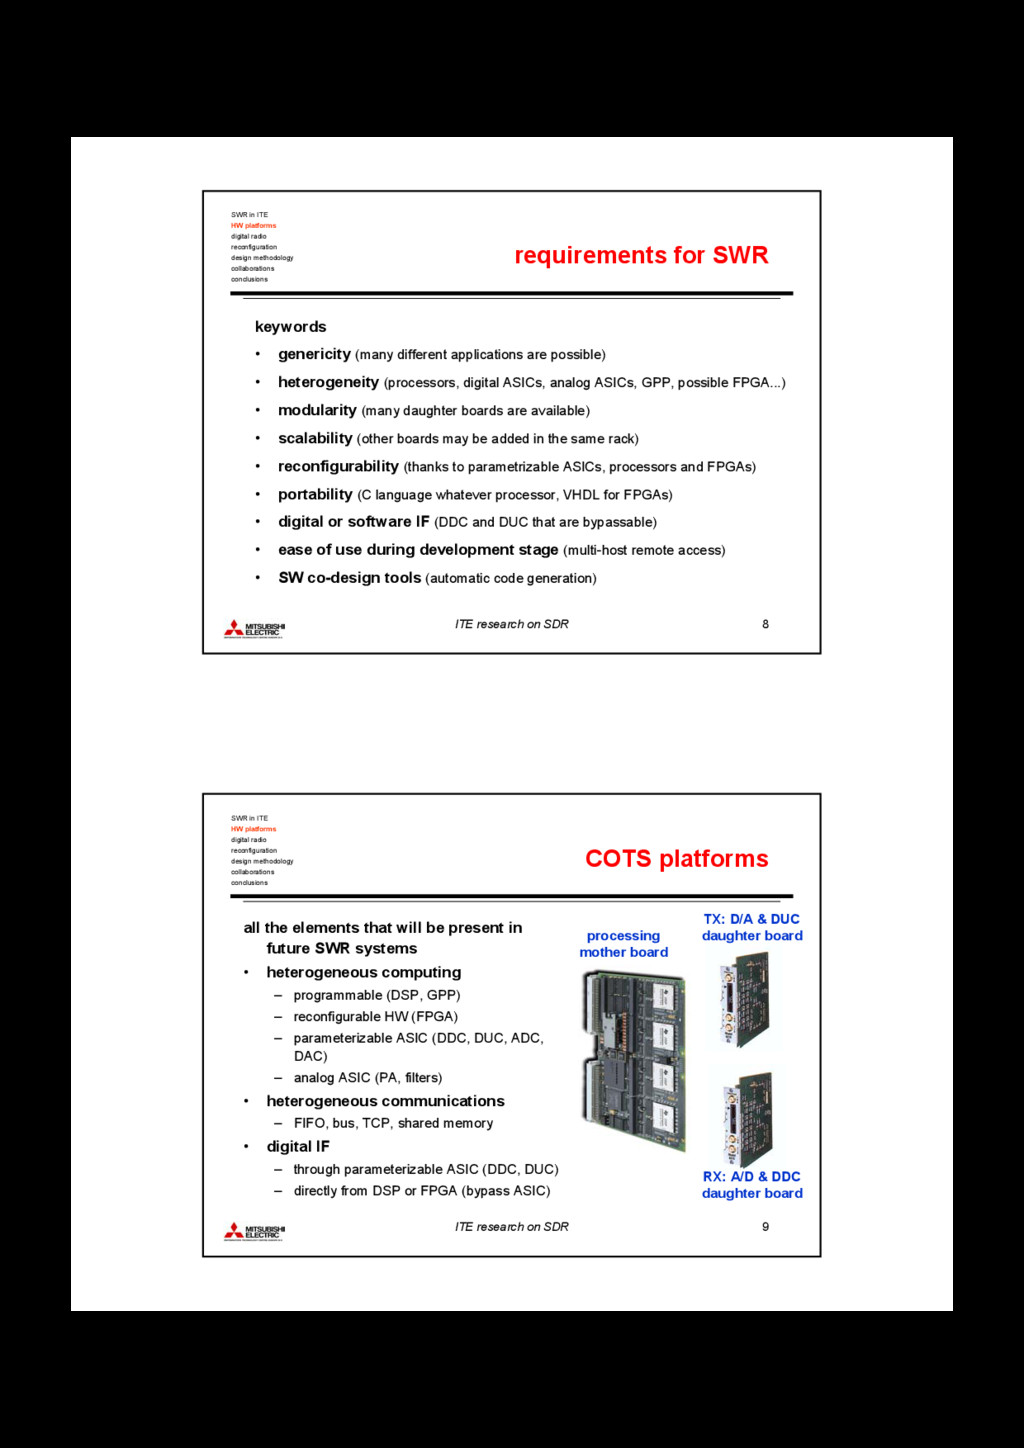 ITE research on SDR 8 requirements for SWR keyw...